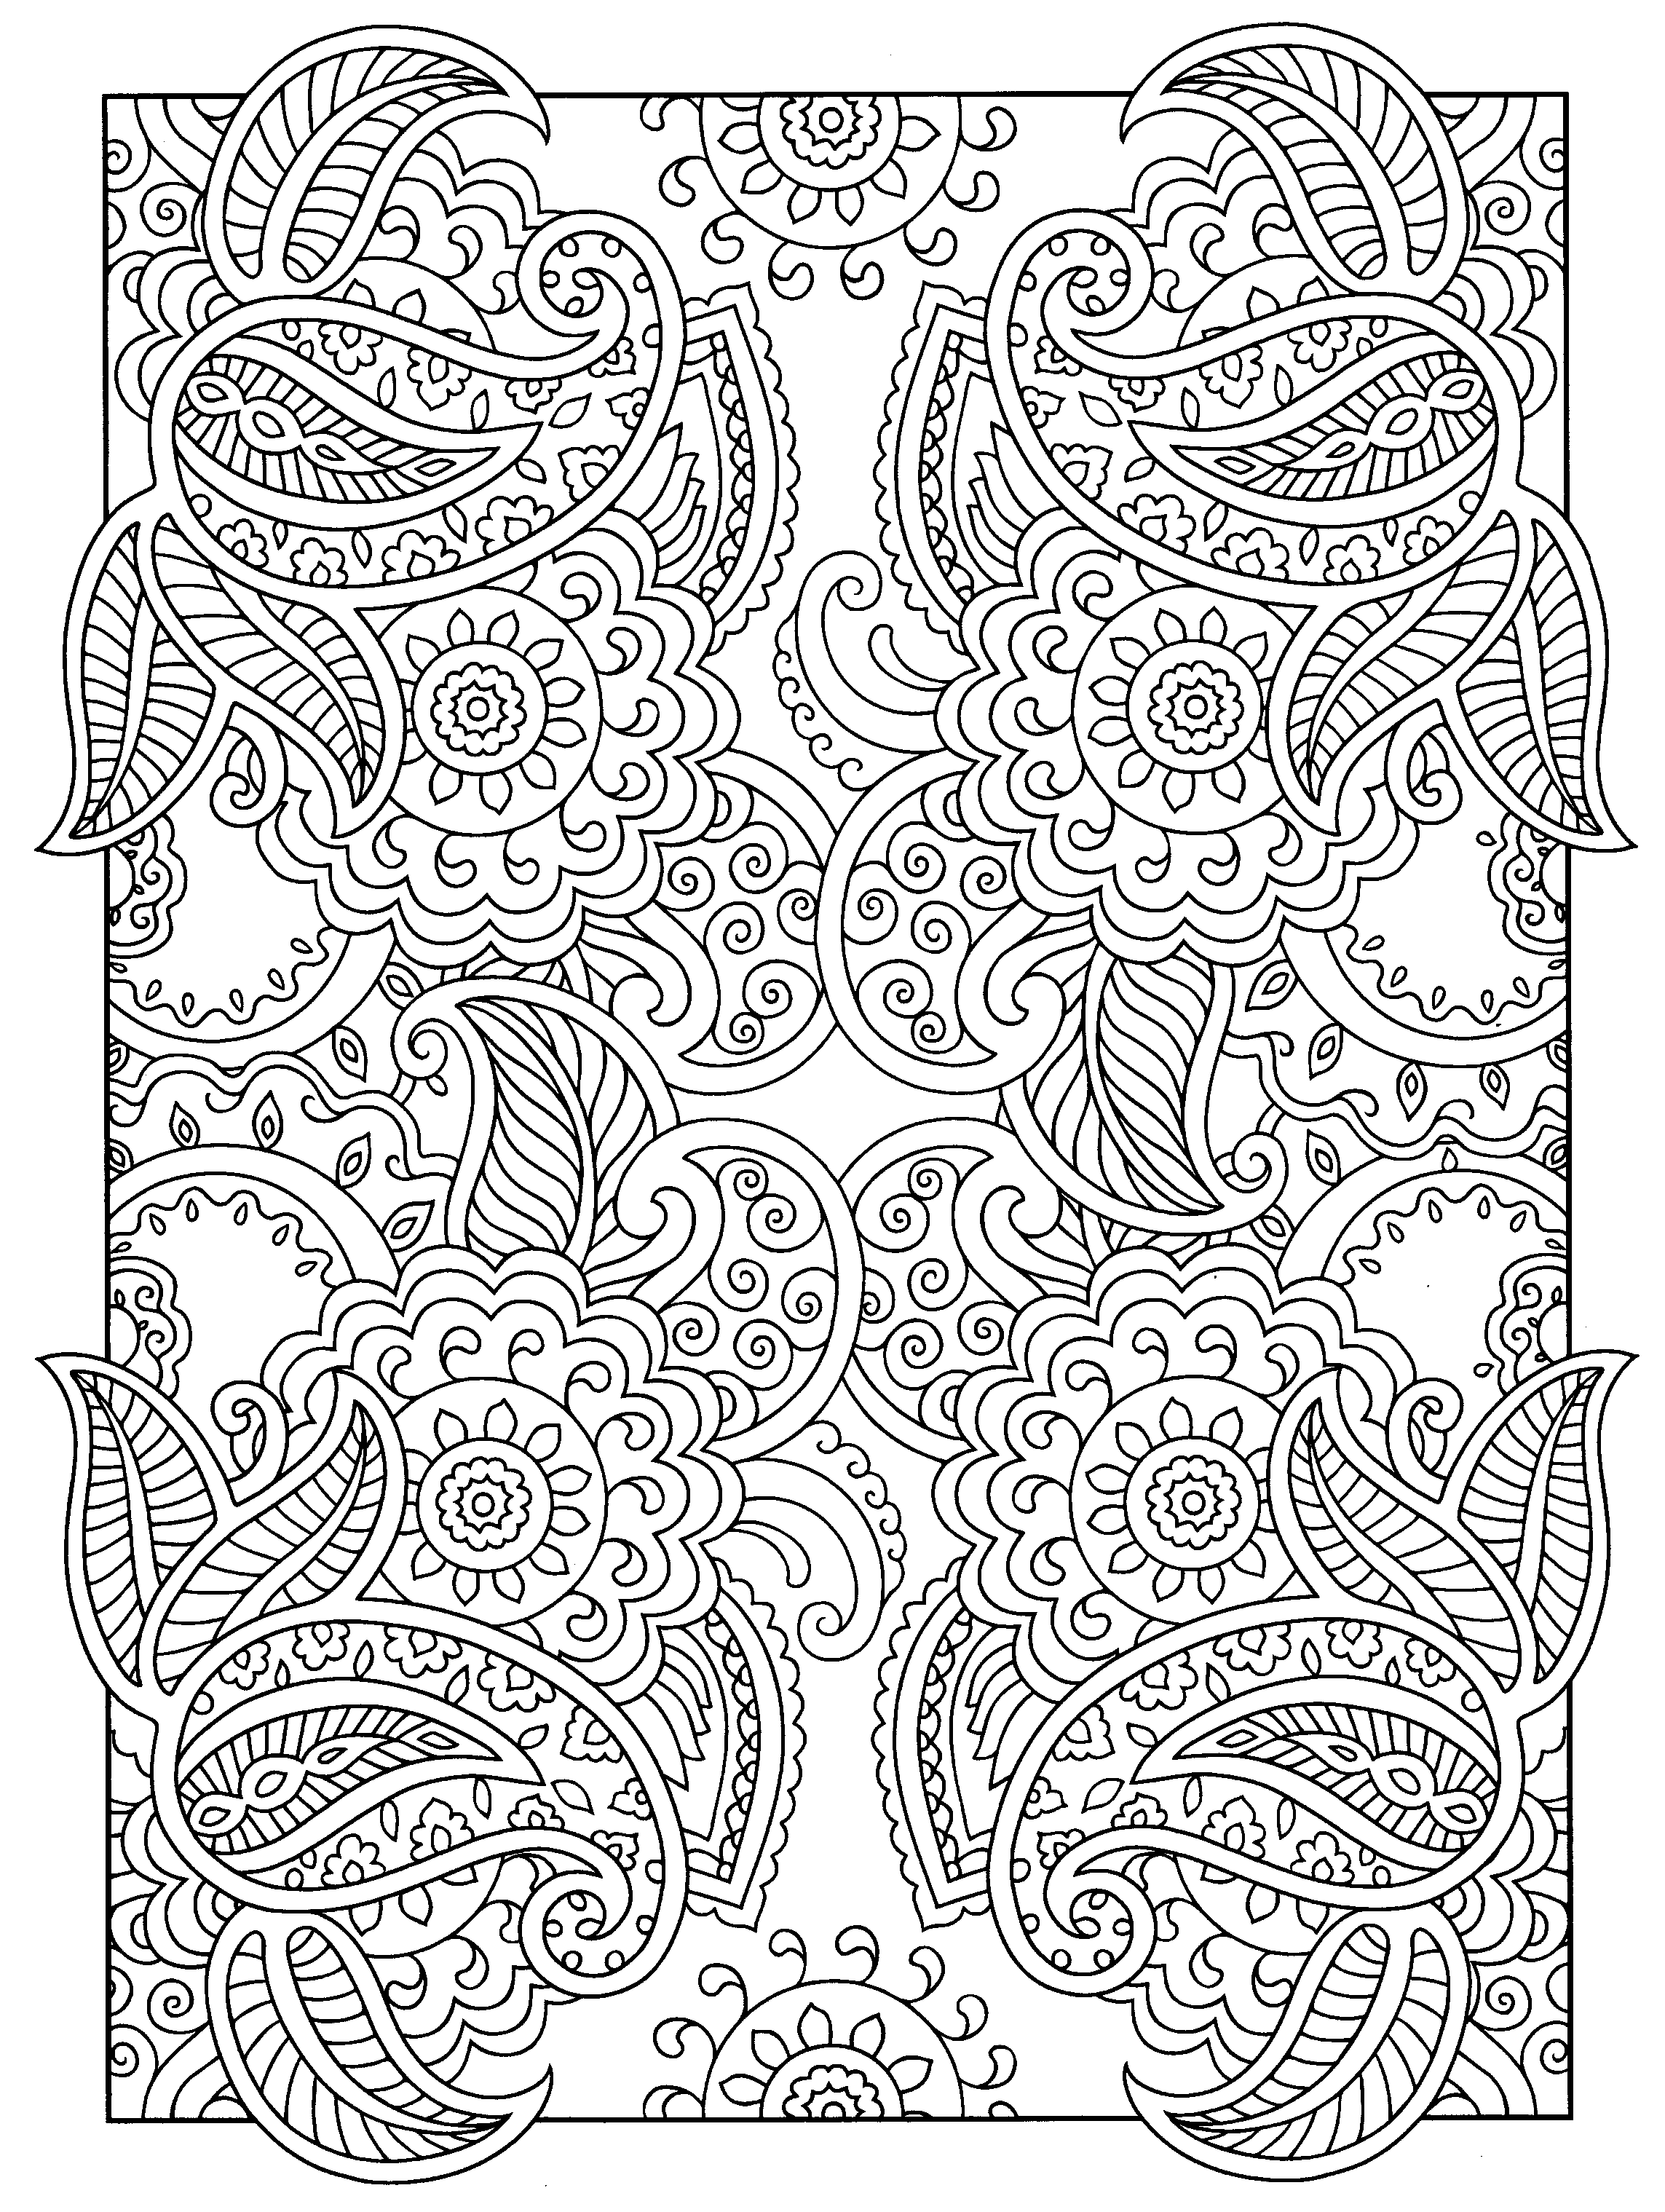 A Favorite From Mehndi Designs By Marty Noble Designs Coloring Books Coloring Pages Mandala Coloring Pages